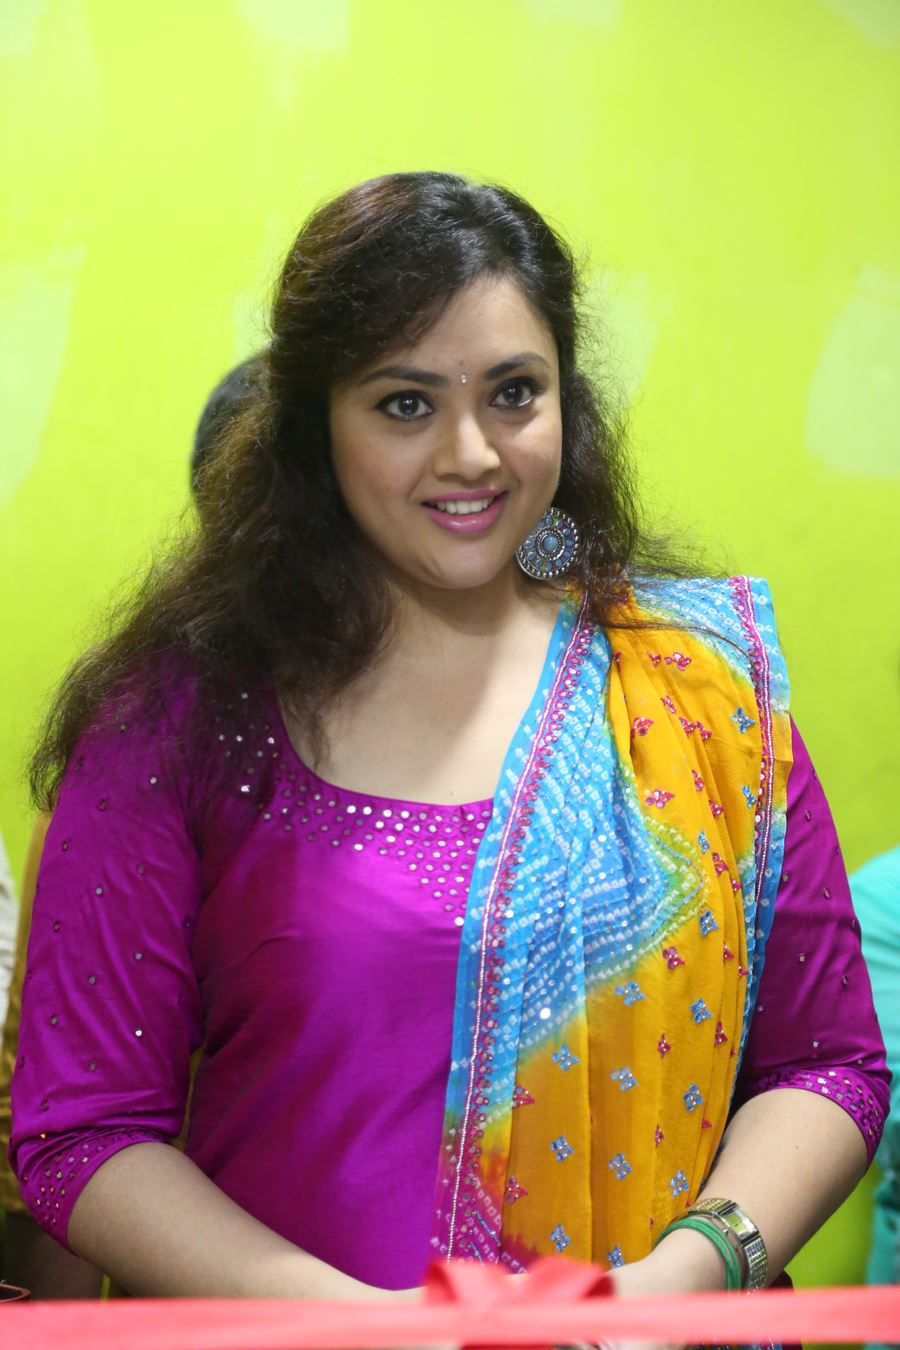 South Indian Glamorous Girl Meena Chubby Face Close up Photos In Pink Dress